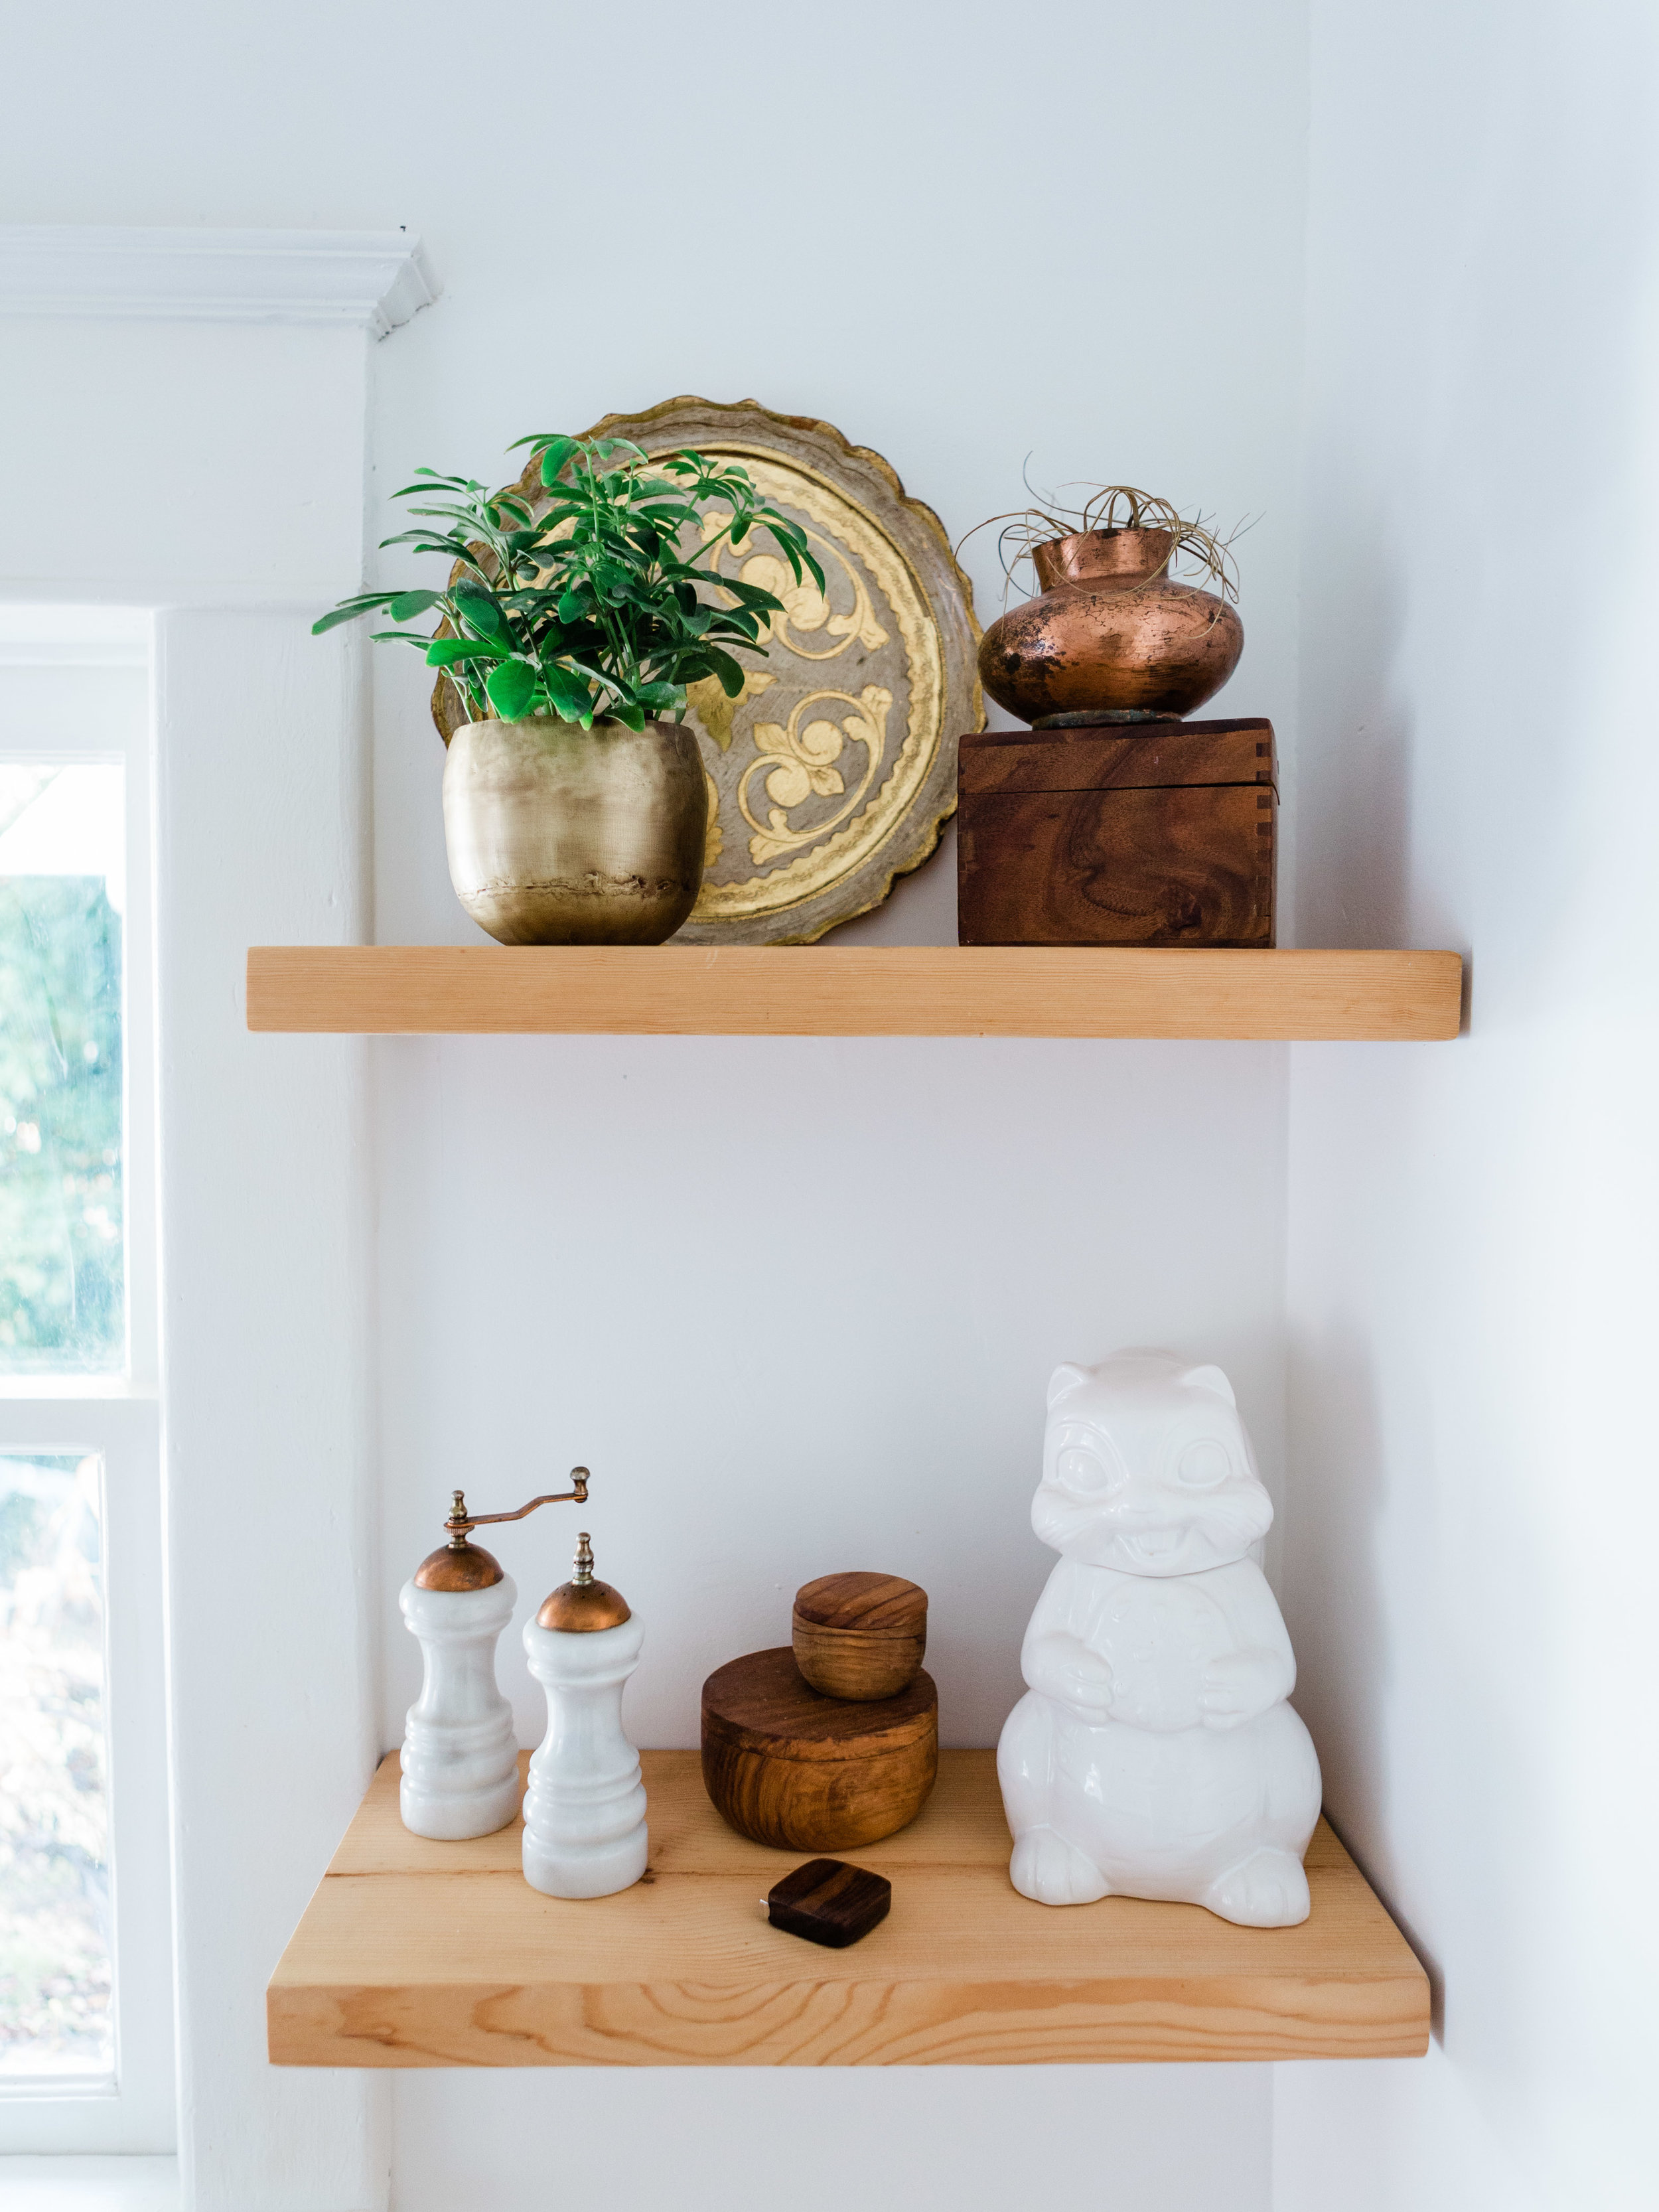 Hot to style open kitchen shelves from Foraged Home